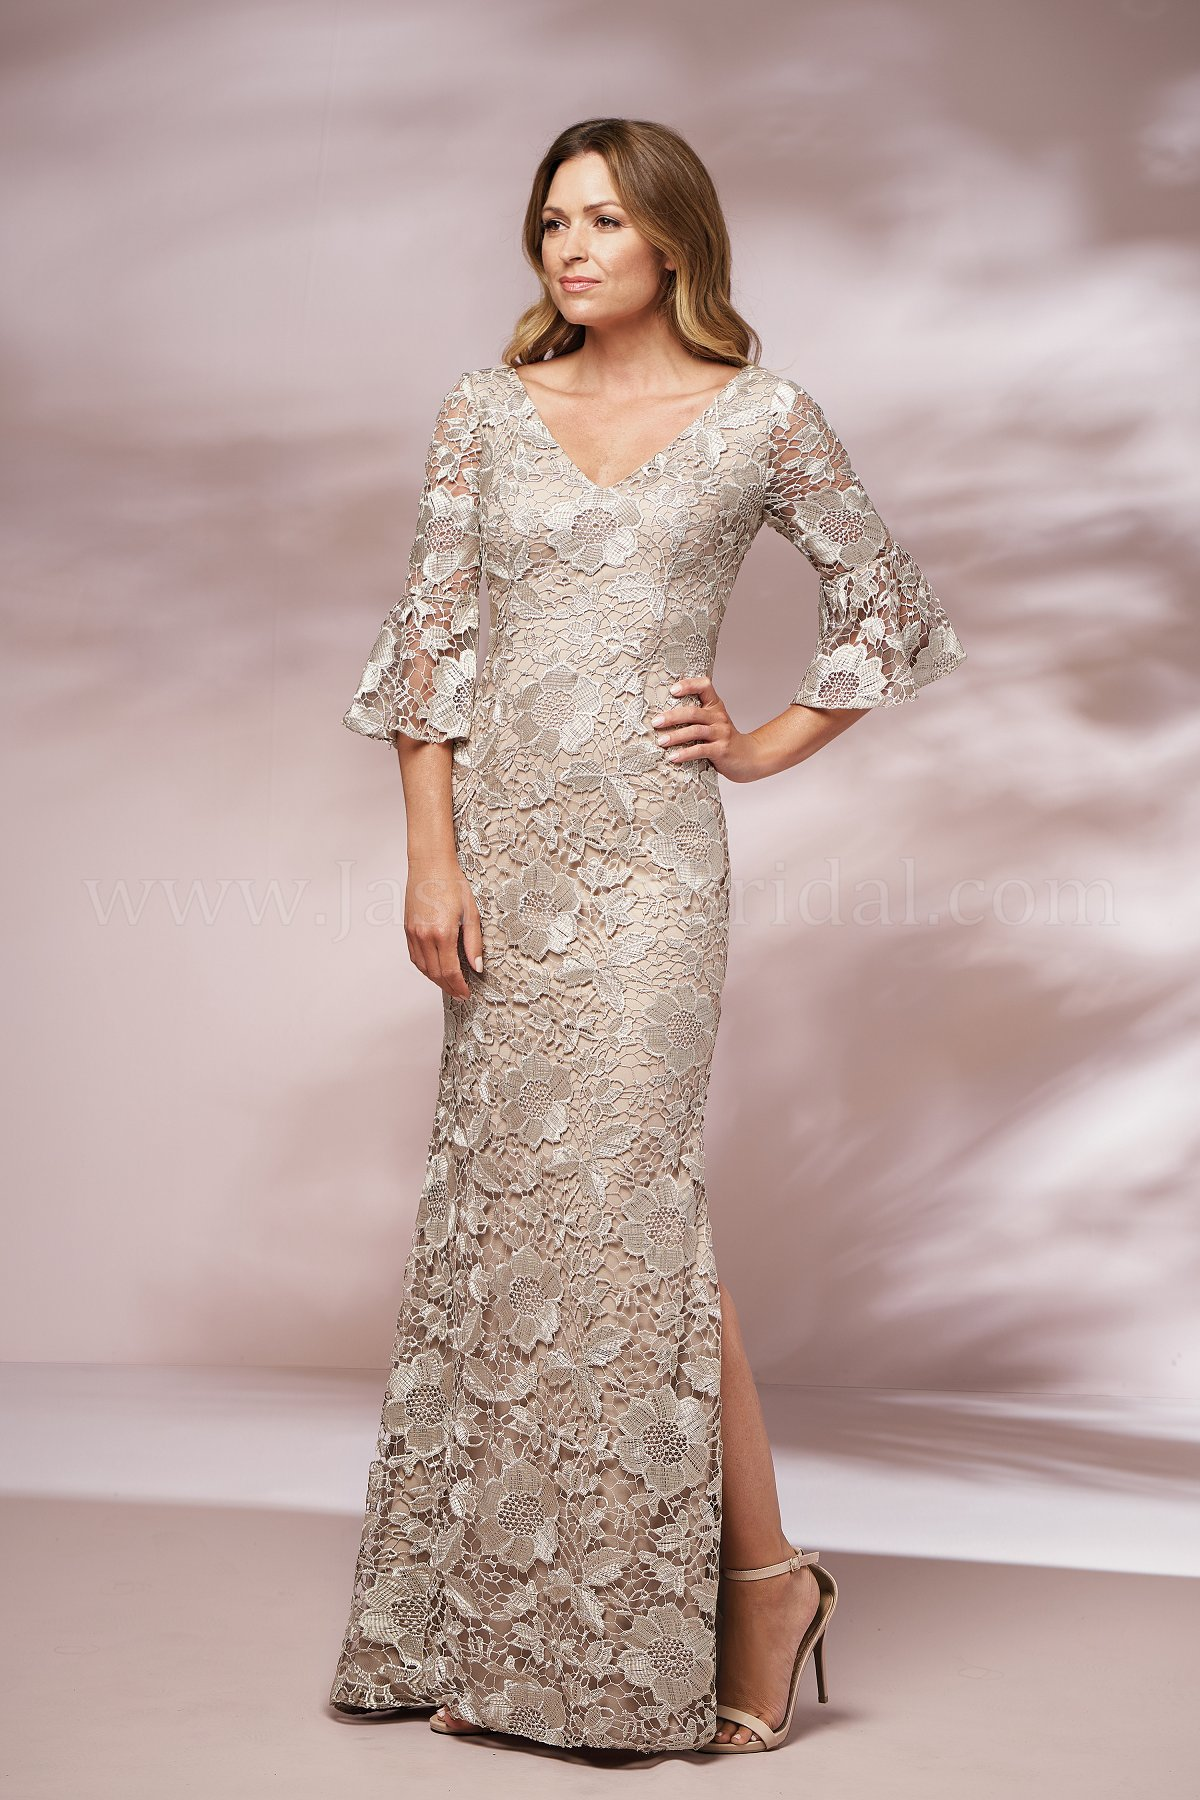 J205017 Long V Neck Lace Mob Dress With Sleeves And Slit